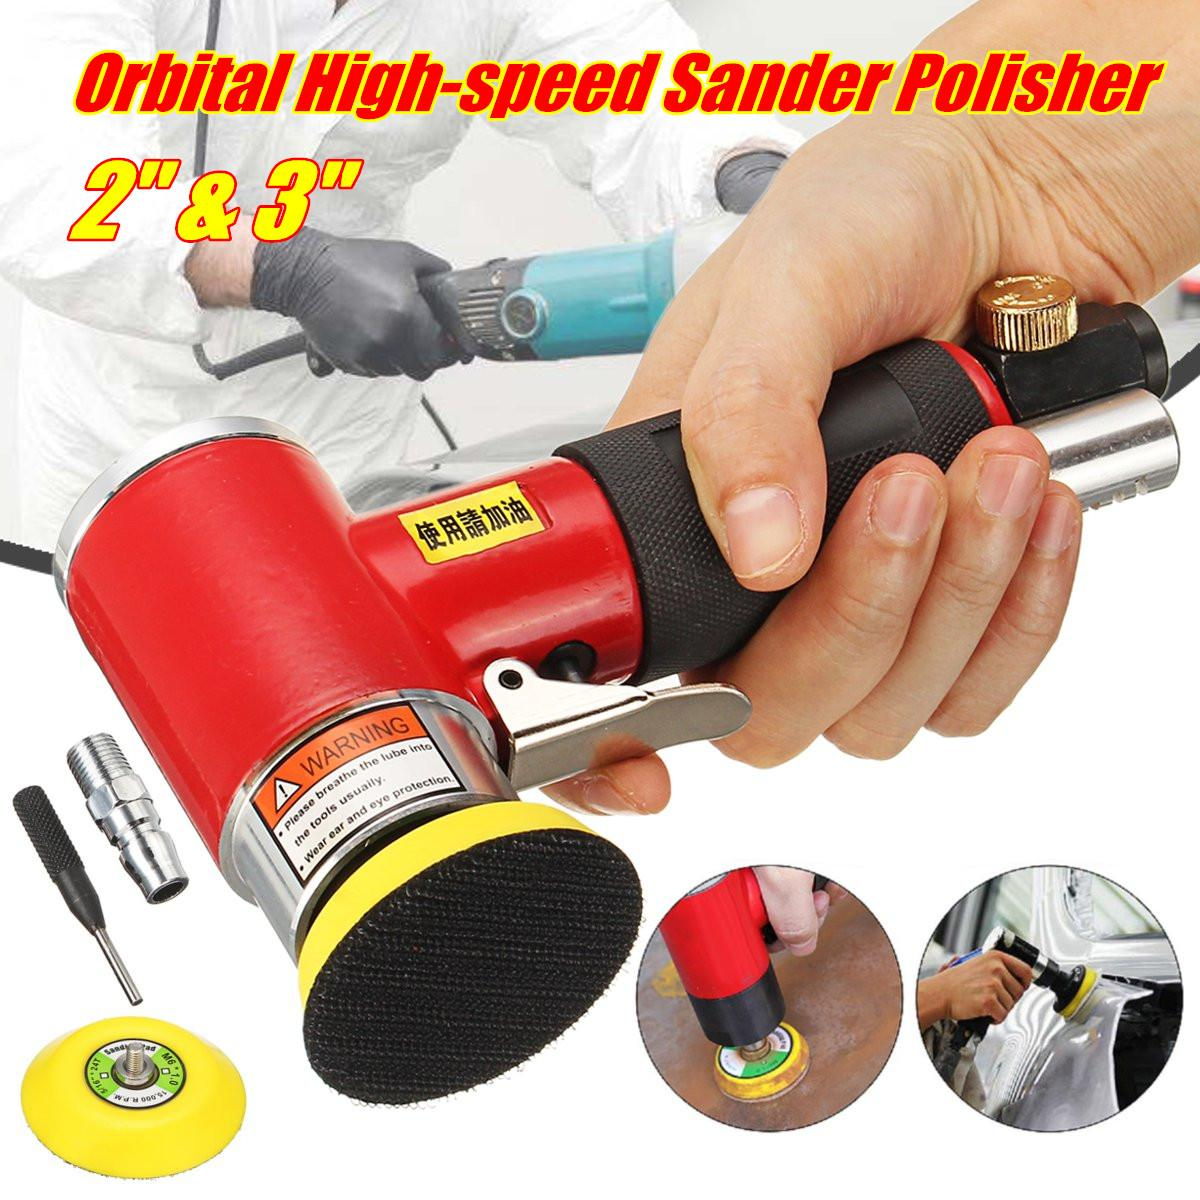 Mini Air Eccentric Pneumatic Polishing Sander Polisher Sanding Machine 1/4in M6 For Various Materials Grinding Fine Polishing 5 inches mini pneumatic air sander 9500rpm car polisher sandpaper grinding sanding polishing machine power tools